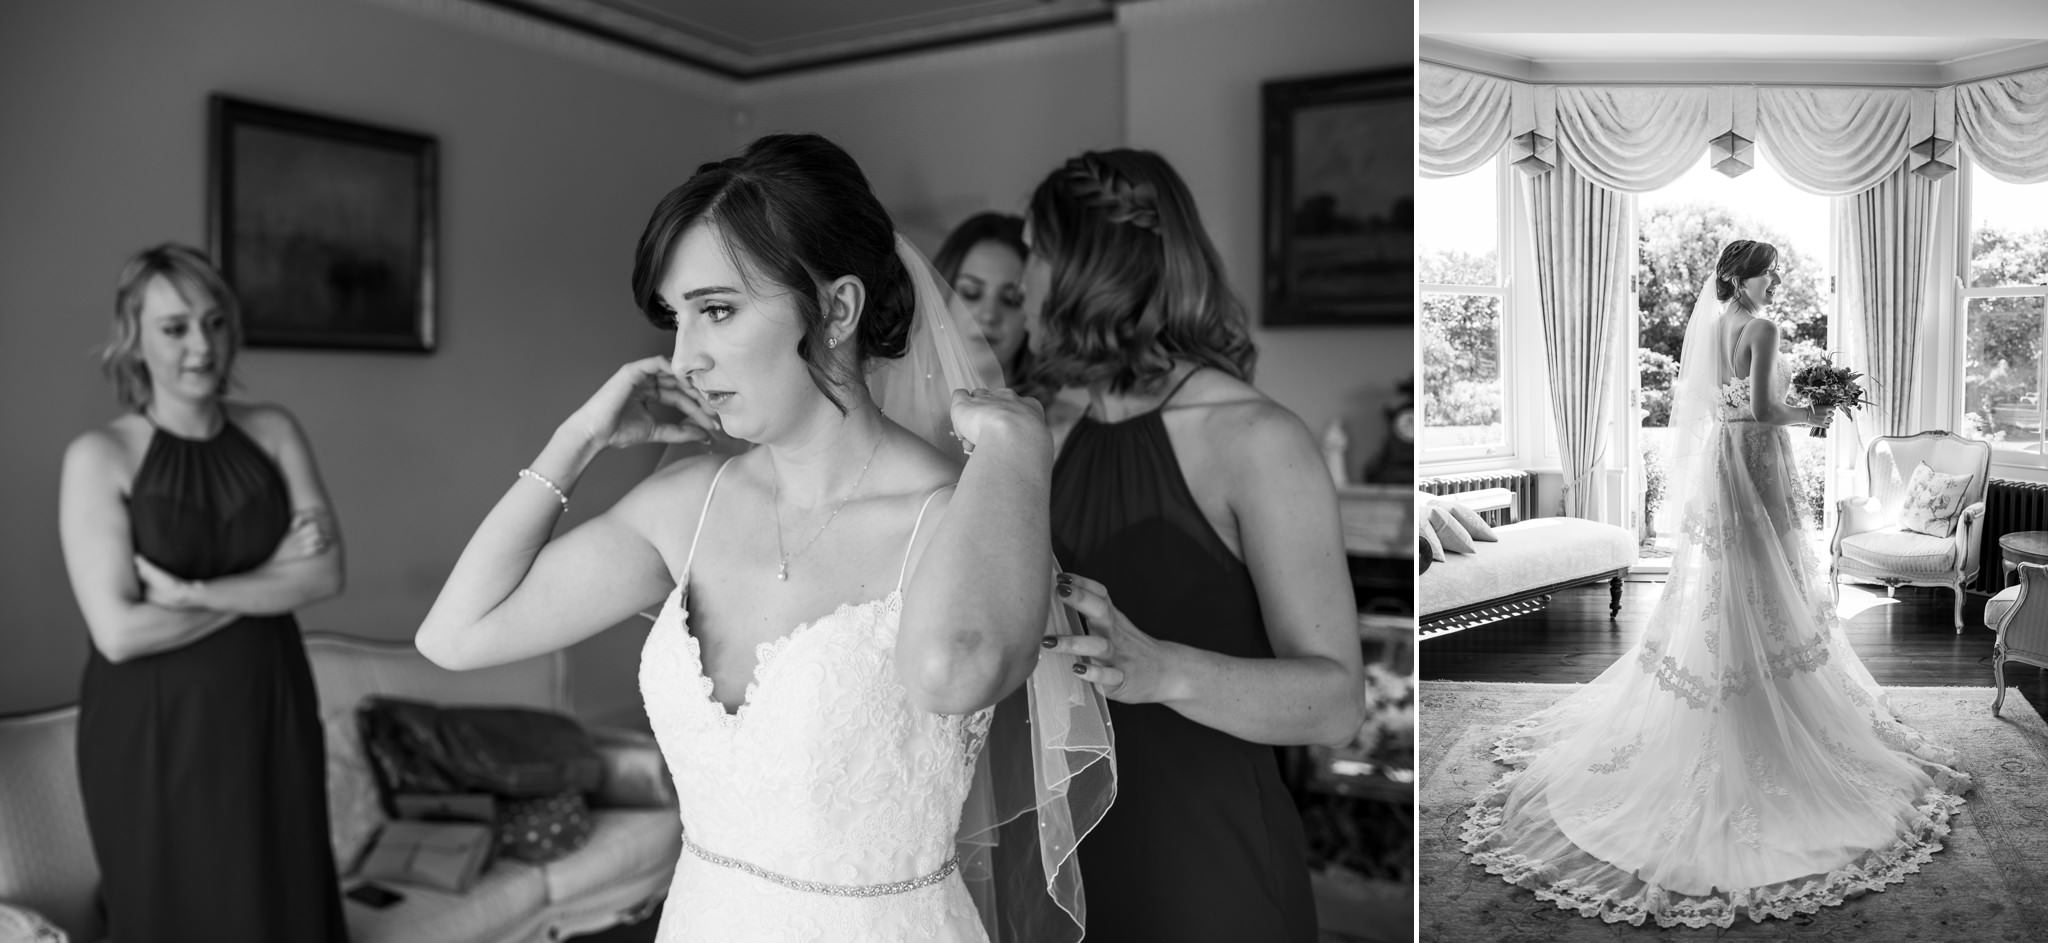 Photos of Parley Manor Bride